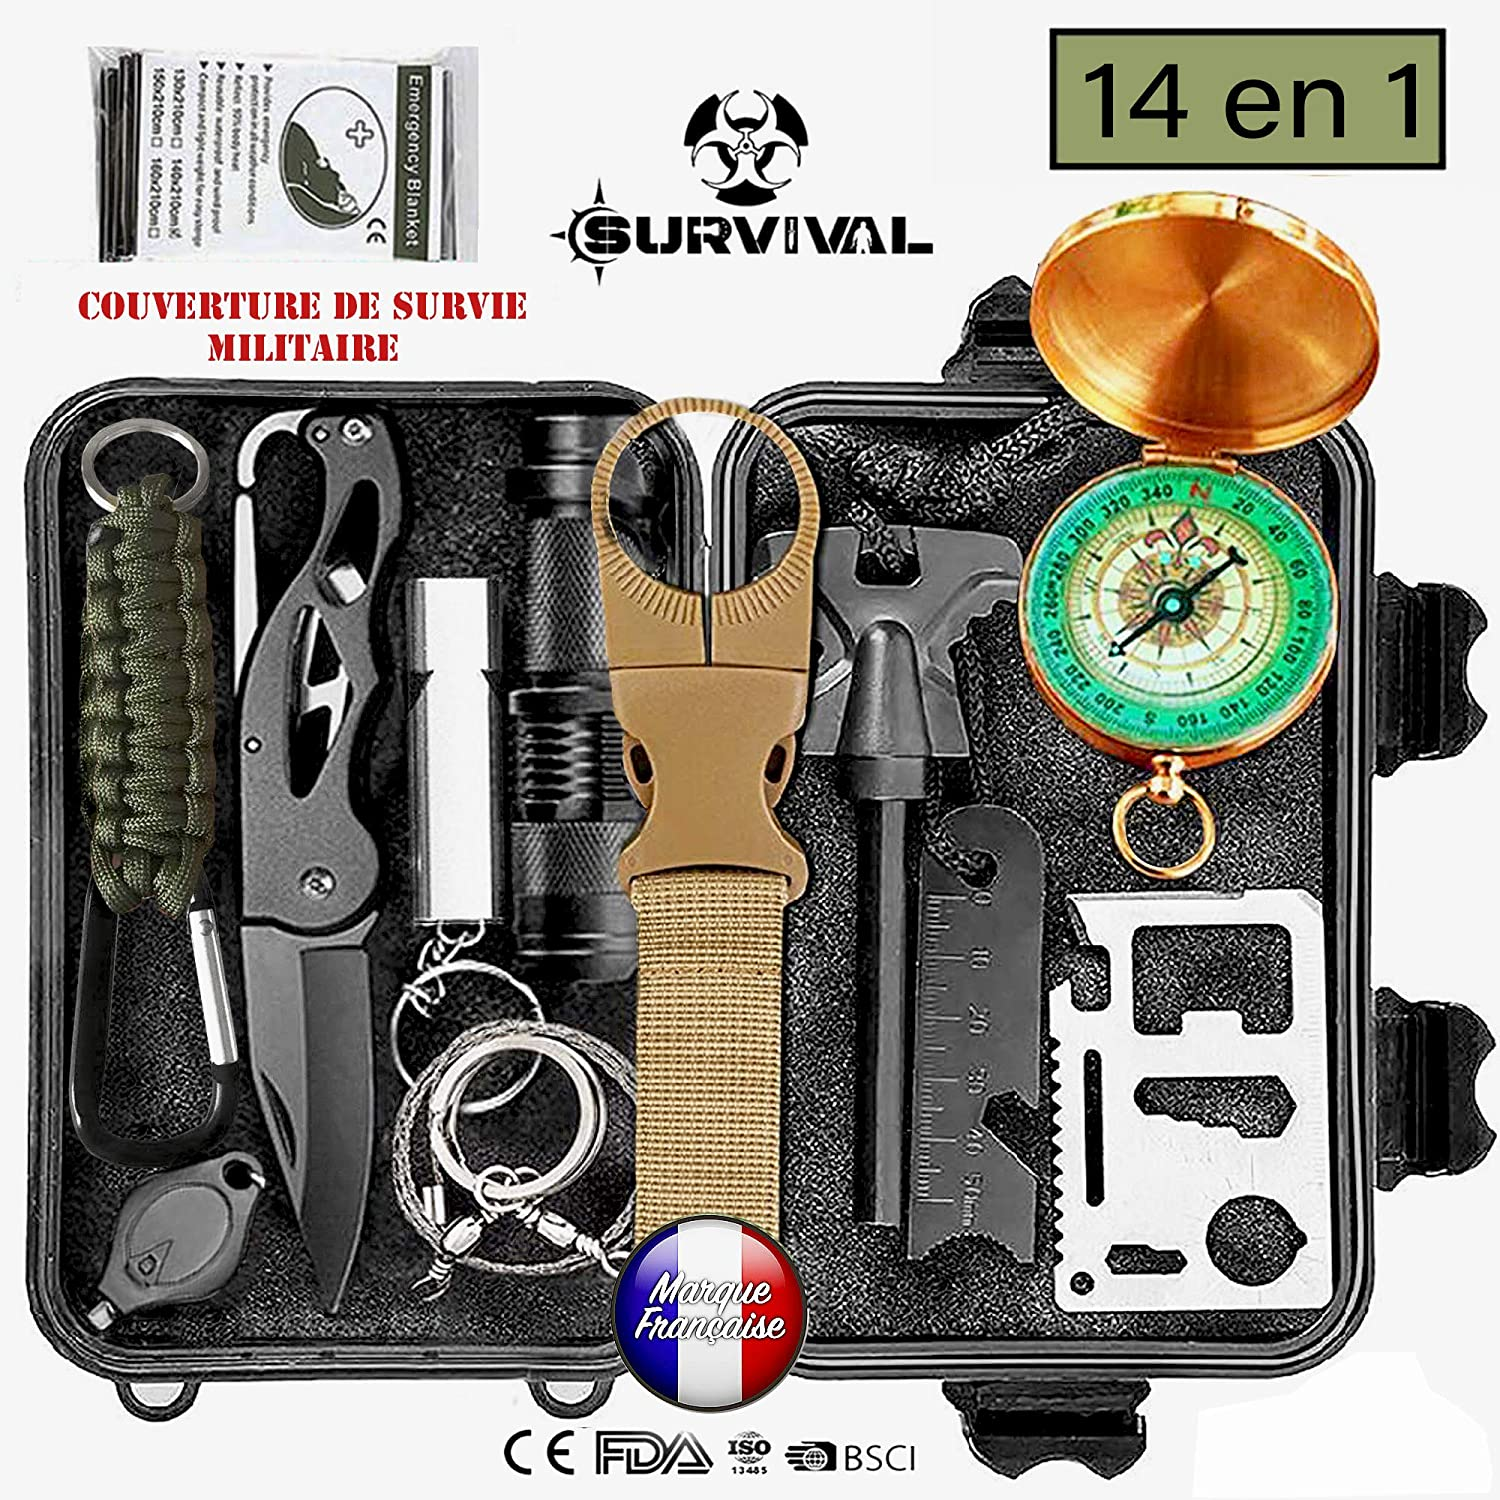 Unibell Survie Outdoor Gear Kit durgence Camping Randonn/ée Auto Aide Outils Box Pack